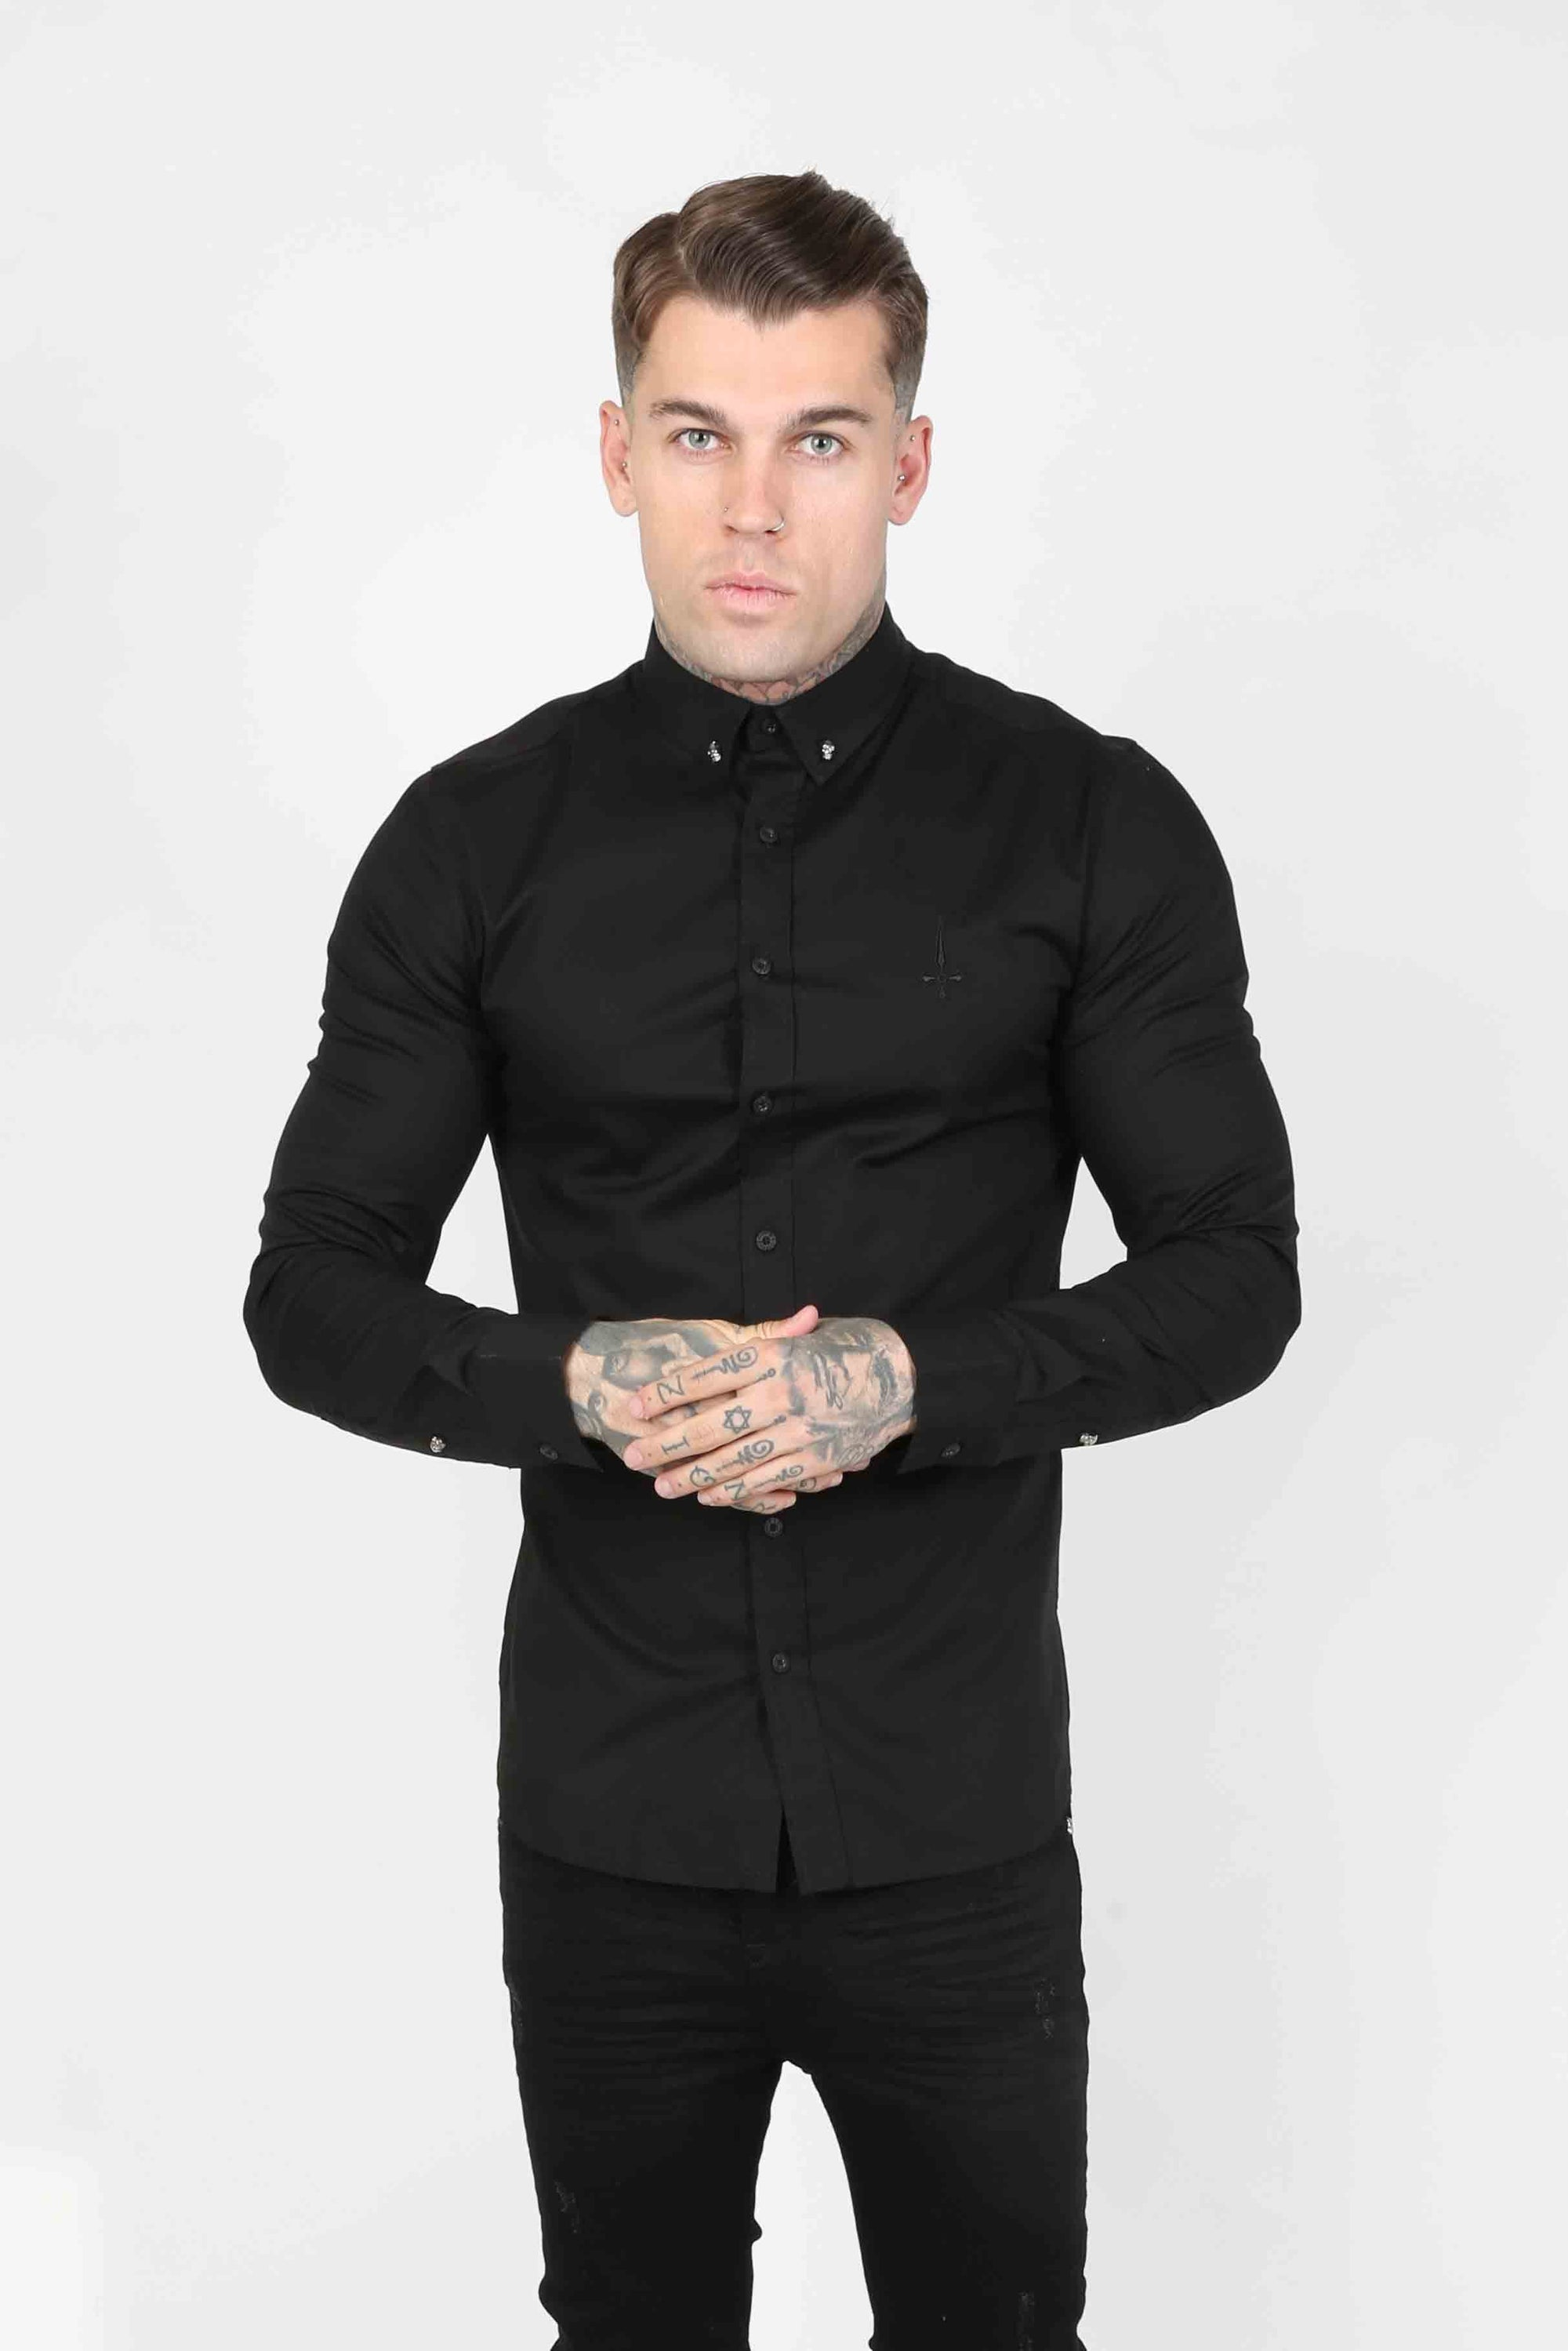 Smart Longsleeve Men's Shirt - Black - Judas Sinned Clothing